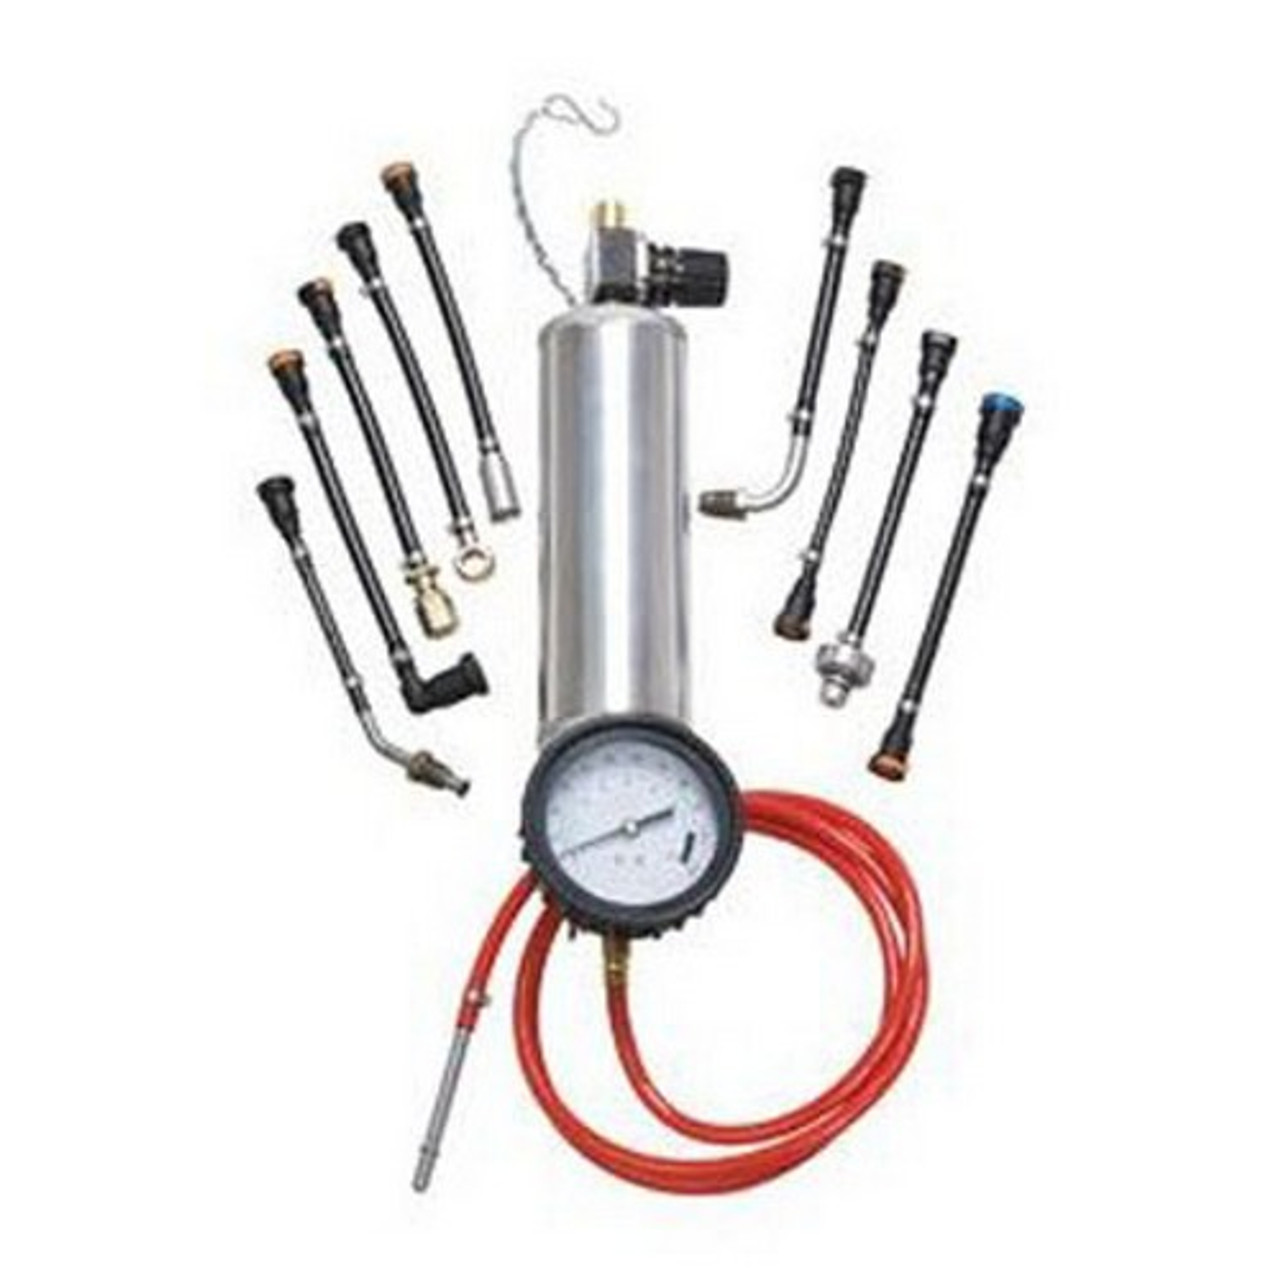 Mityvac MV5565 Fuel Injection Cleaning Kit with Hose